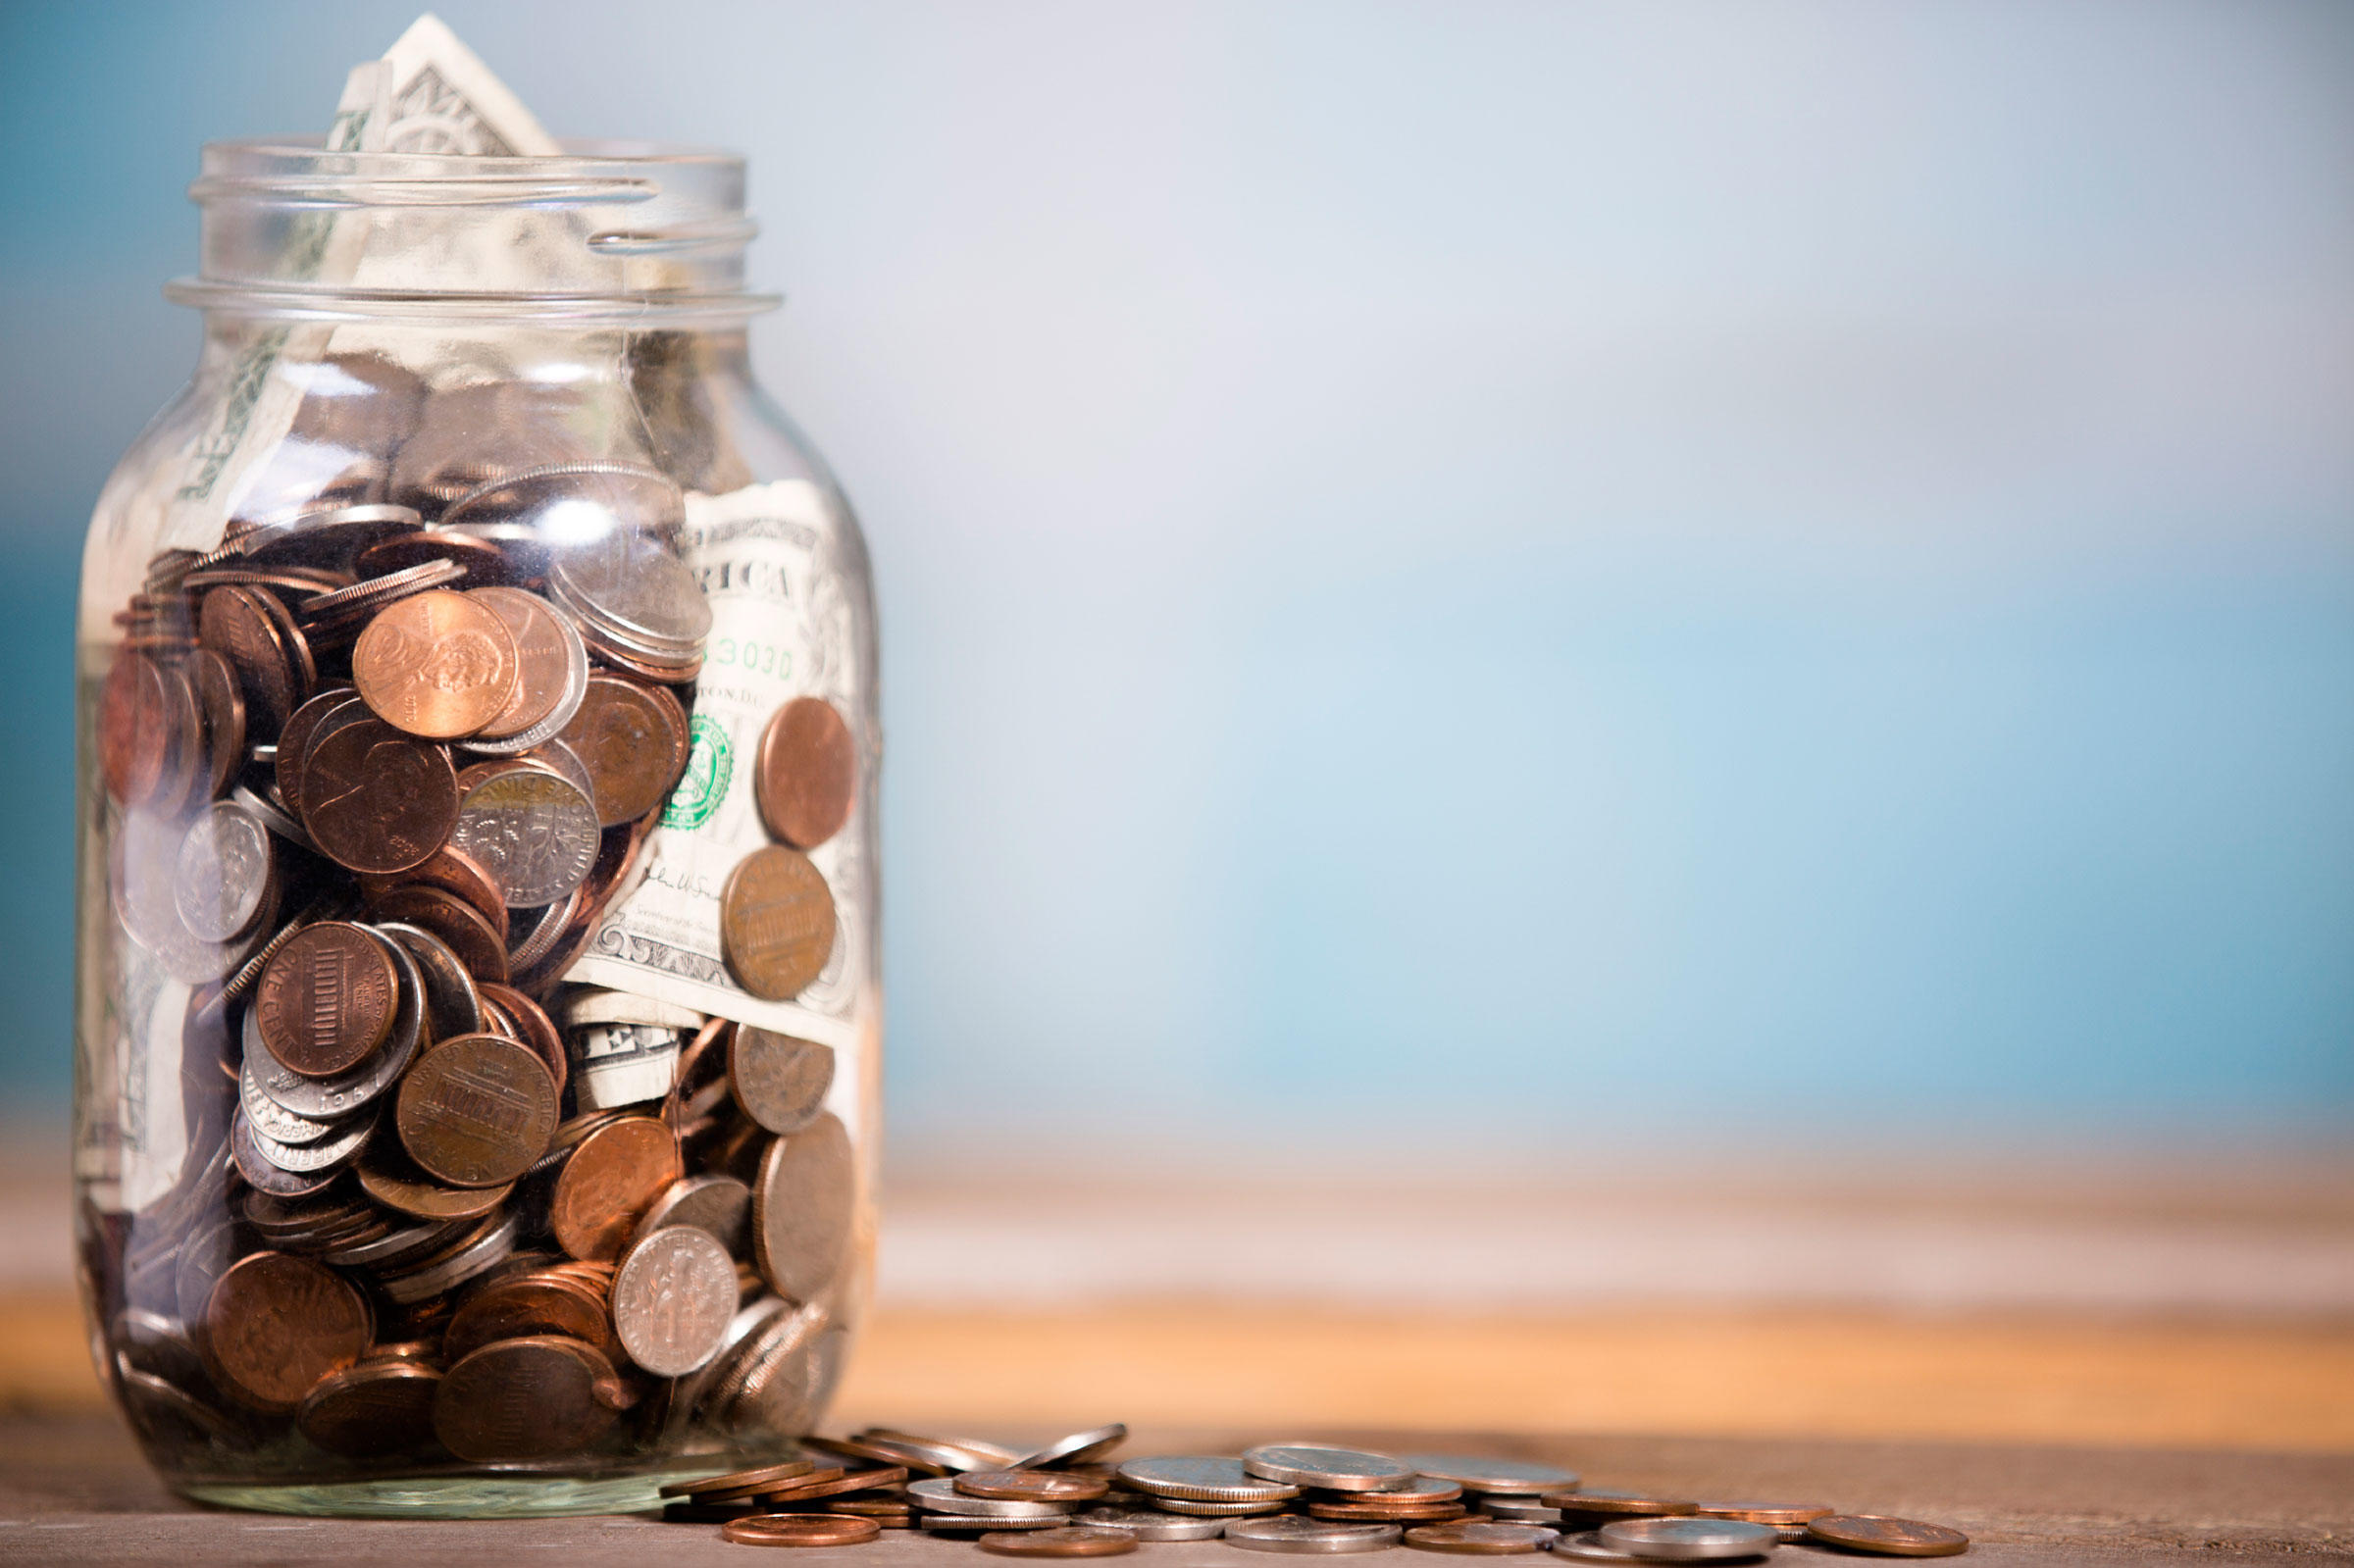 Freelancer's guide to taxes money in a Mason jar